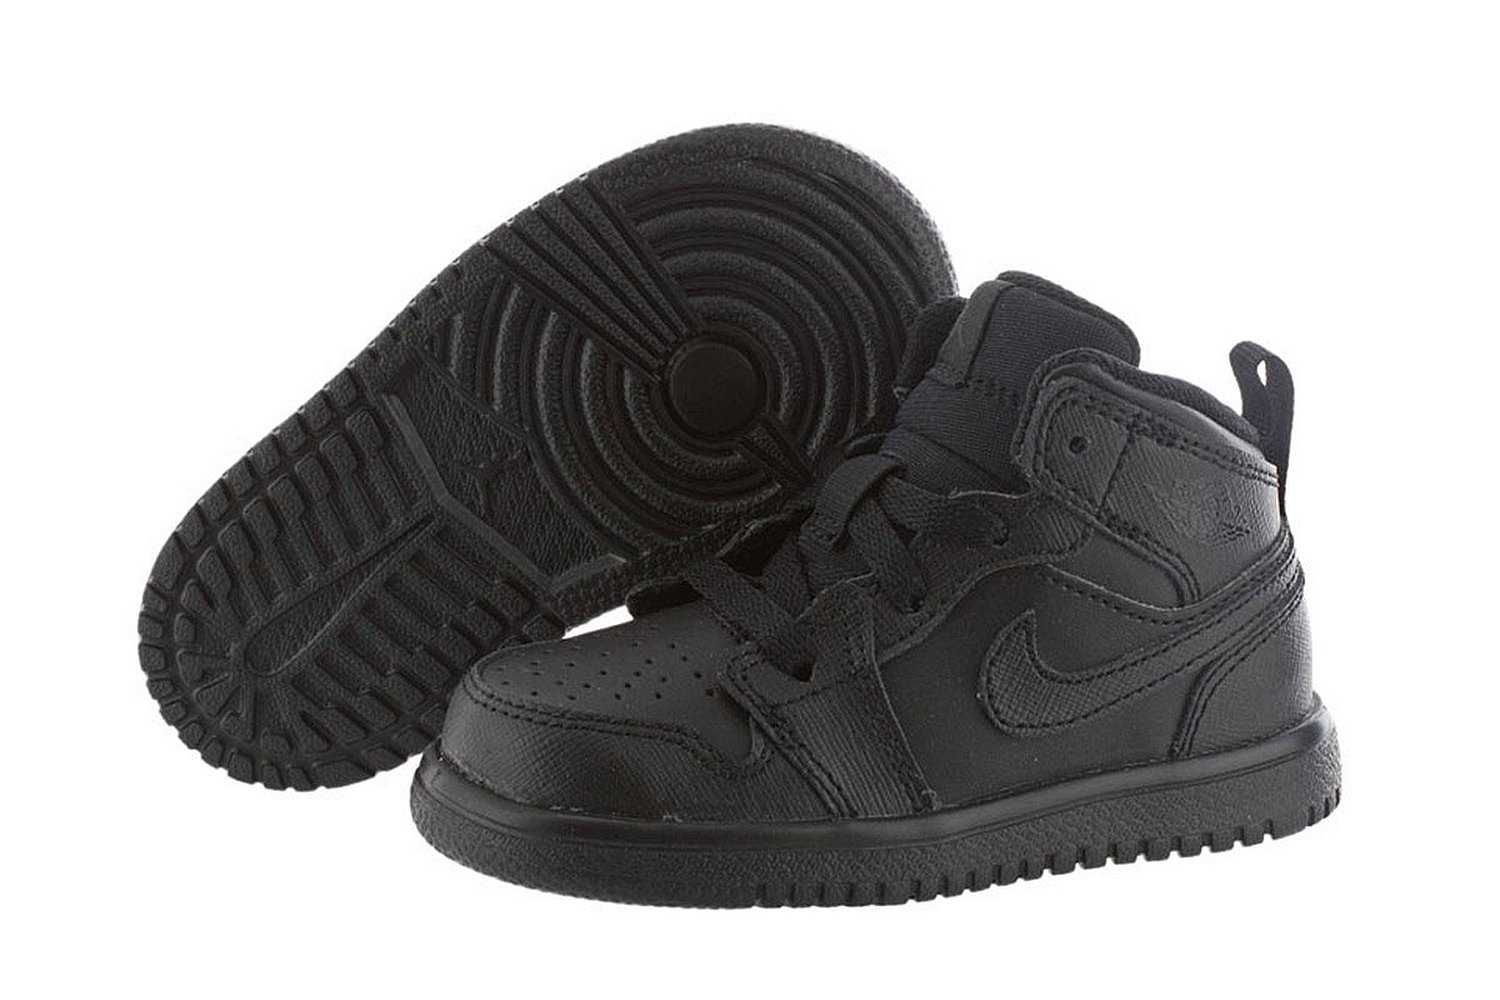 best website a9ae6 523d2 Buy Nike Air Jordan 1 Mid Flex (TD) 554727-010 Infant ...